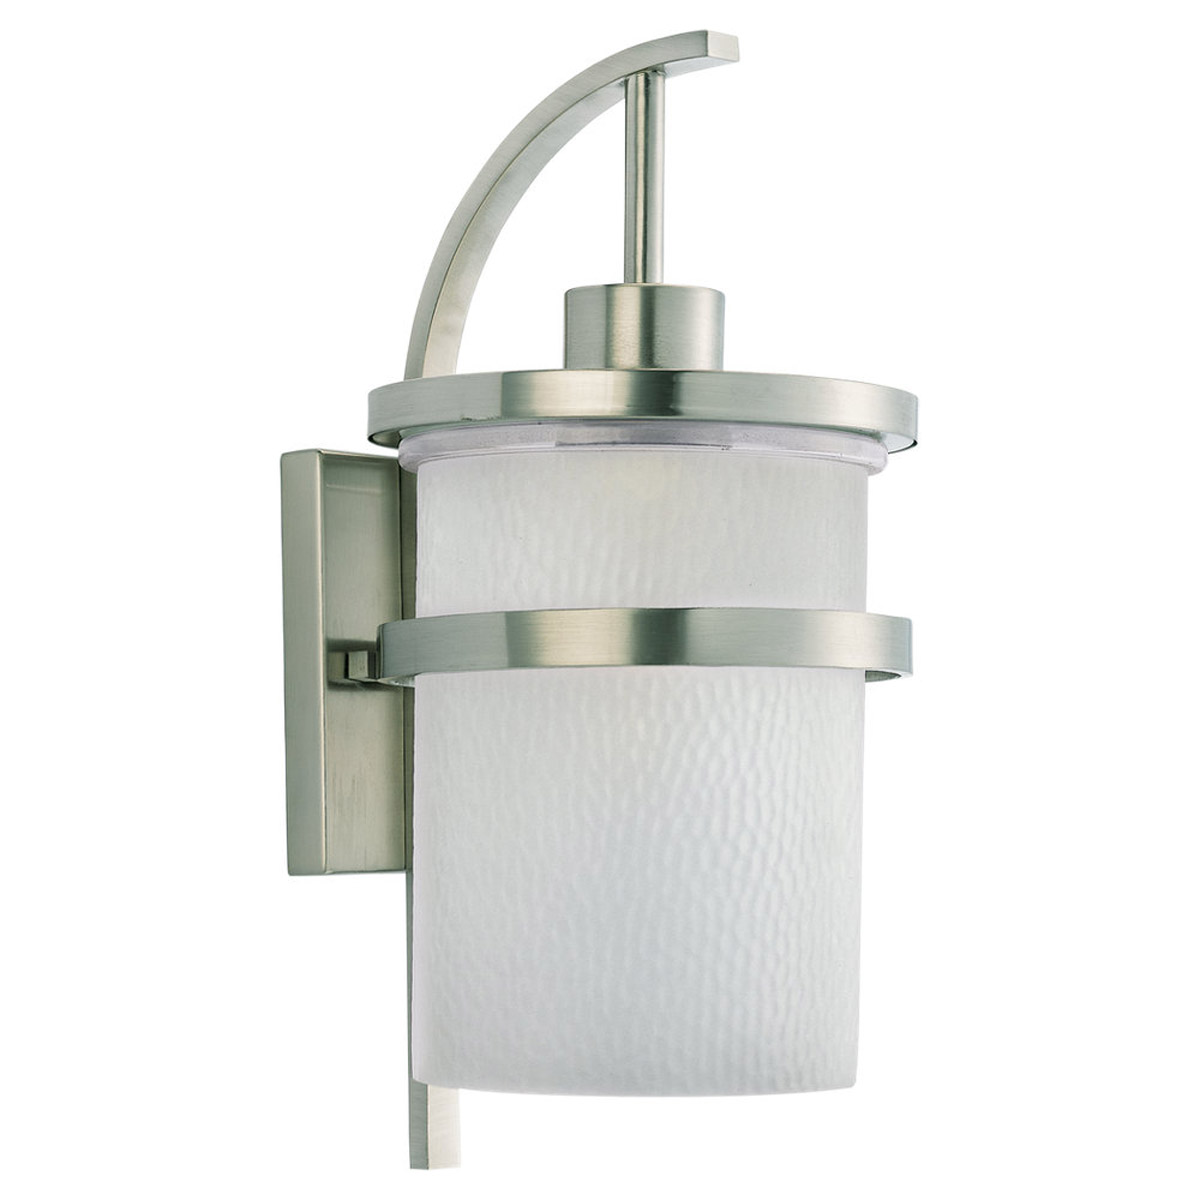 Sea Gull Lighting Eternity 1 Light Outdoor Wall Lantern in Brushed Nickel 88119-962 photo